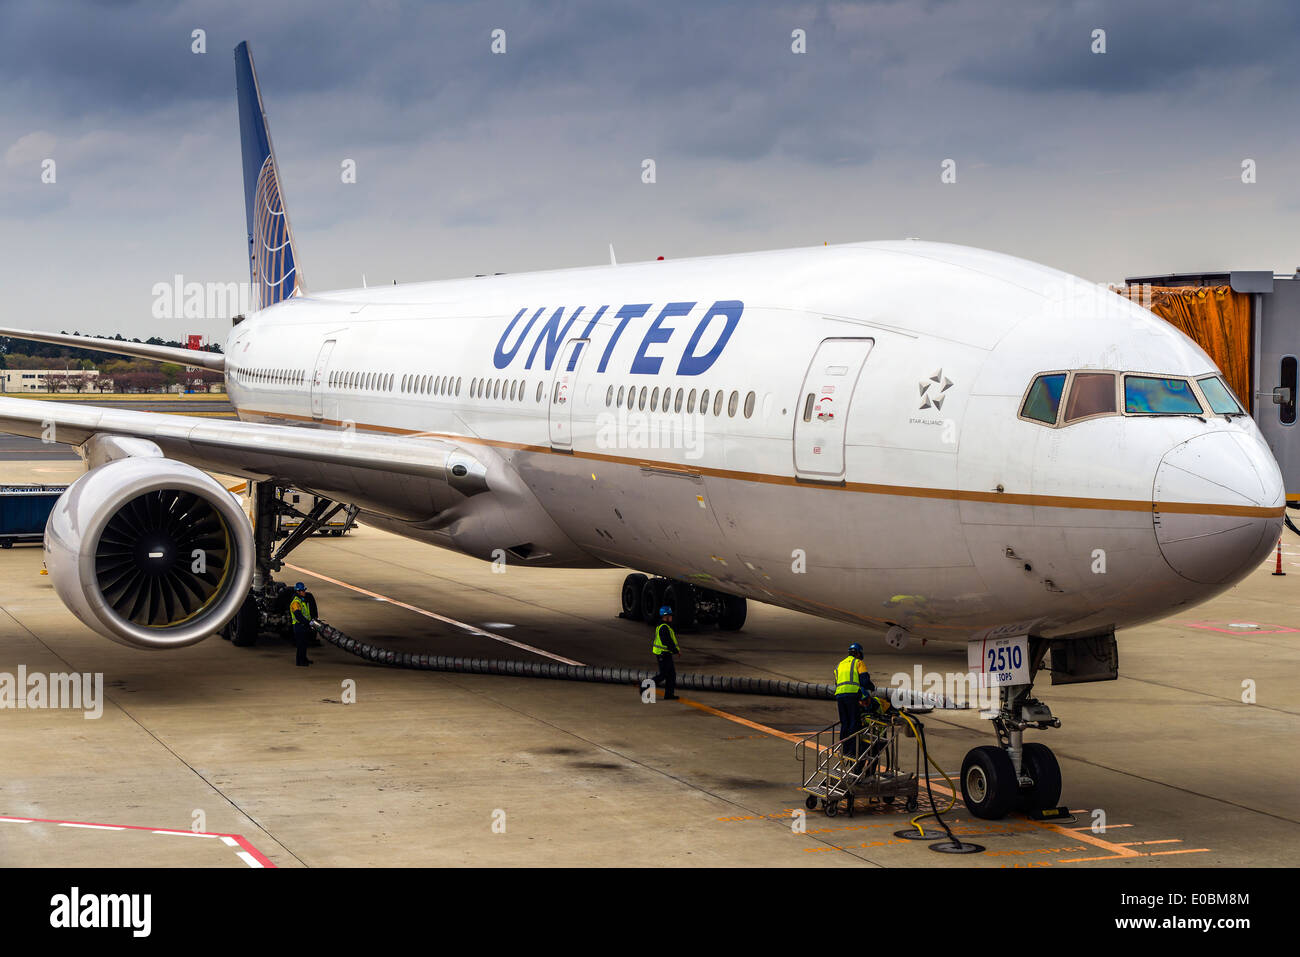 United Airlines Boeing 777 parked at gate, Narita international airport, Tokyo, Japan - Stock Image